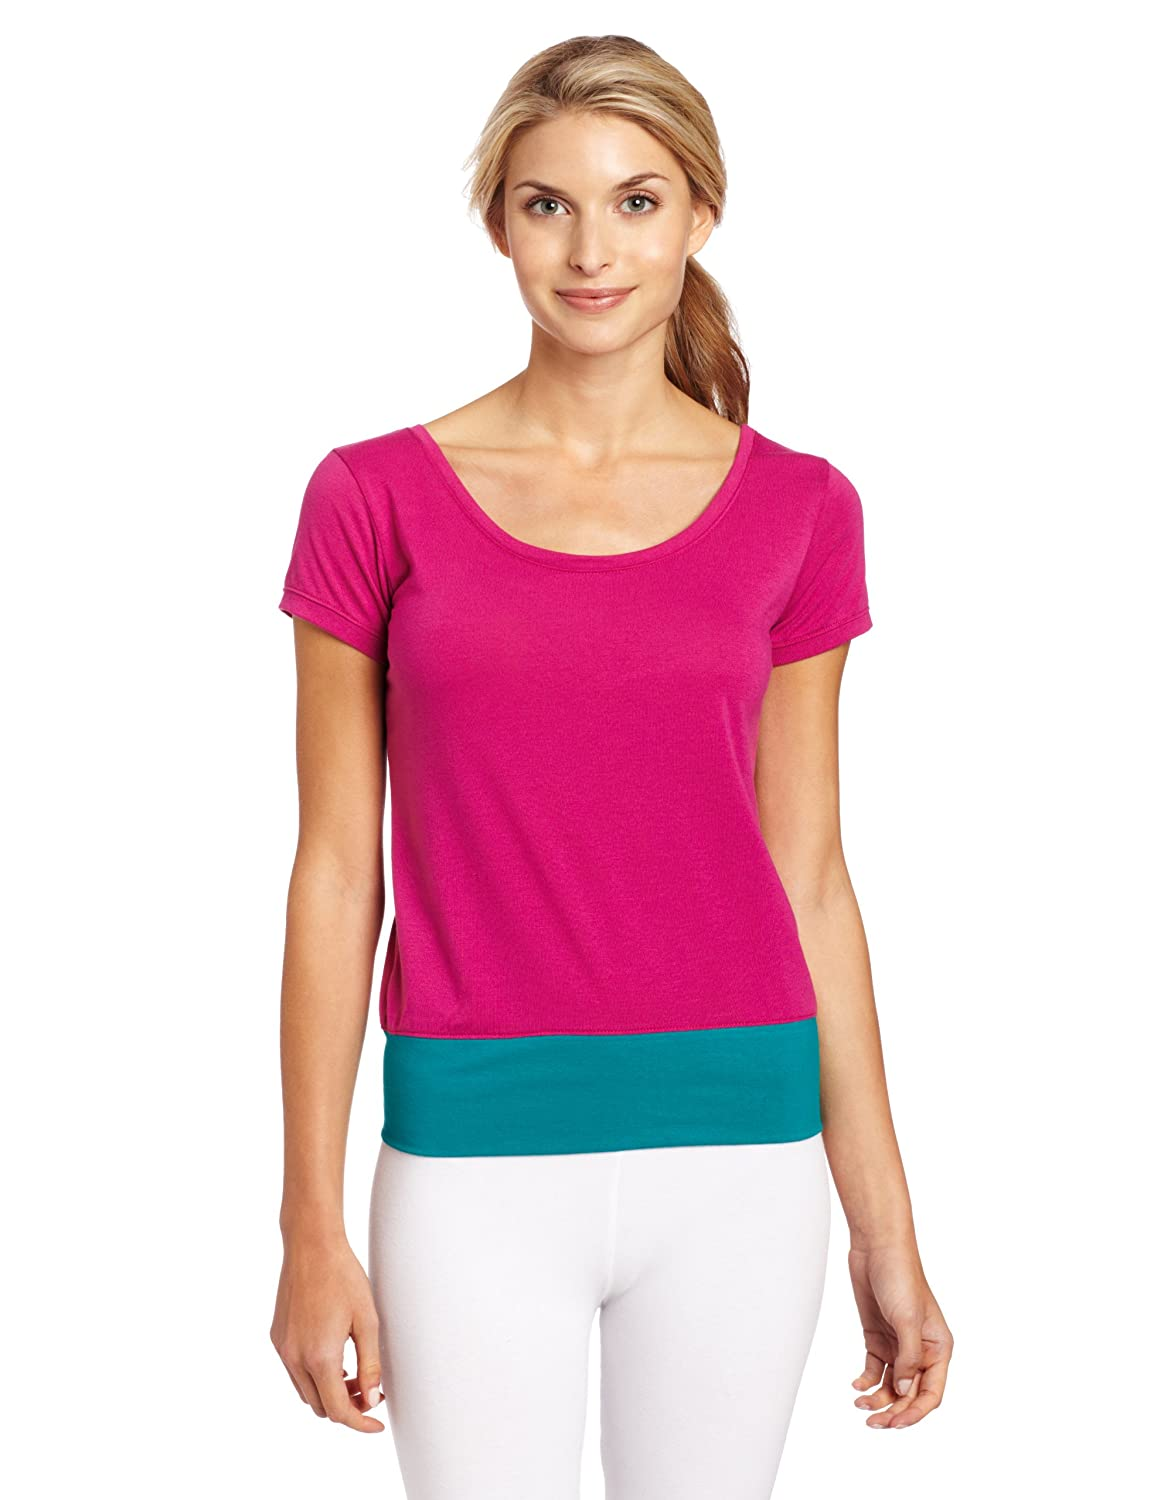 Zumba Women's Daring Scoop Neck Tee